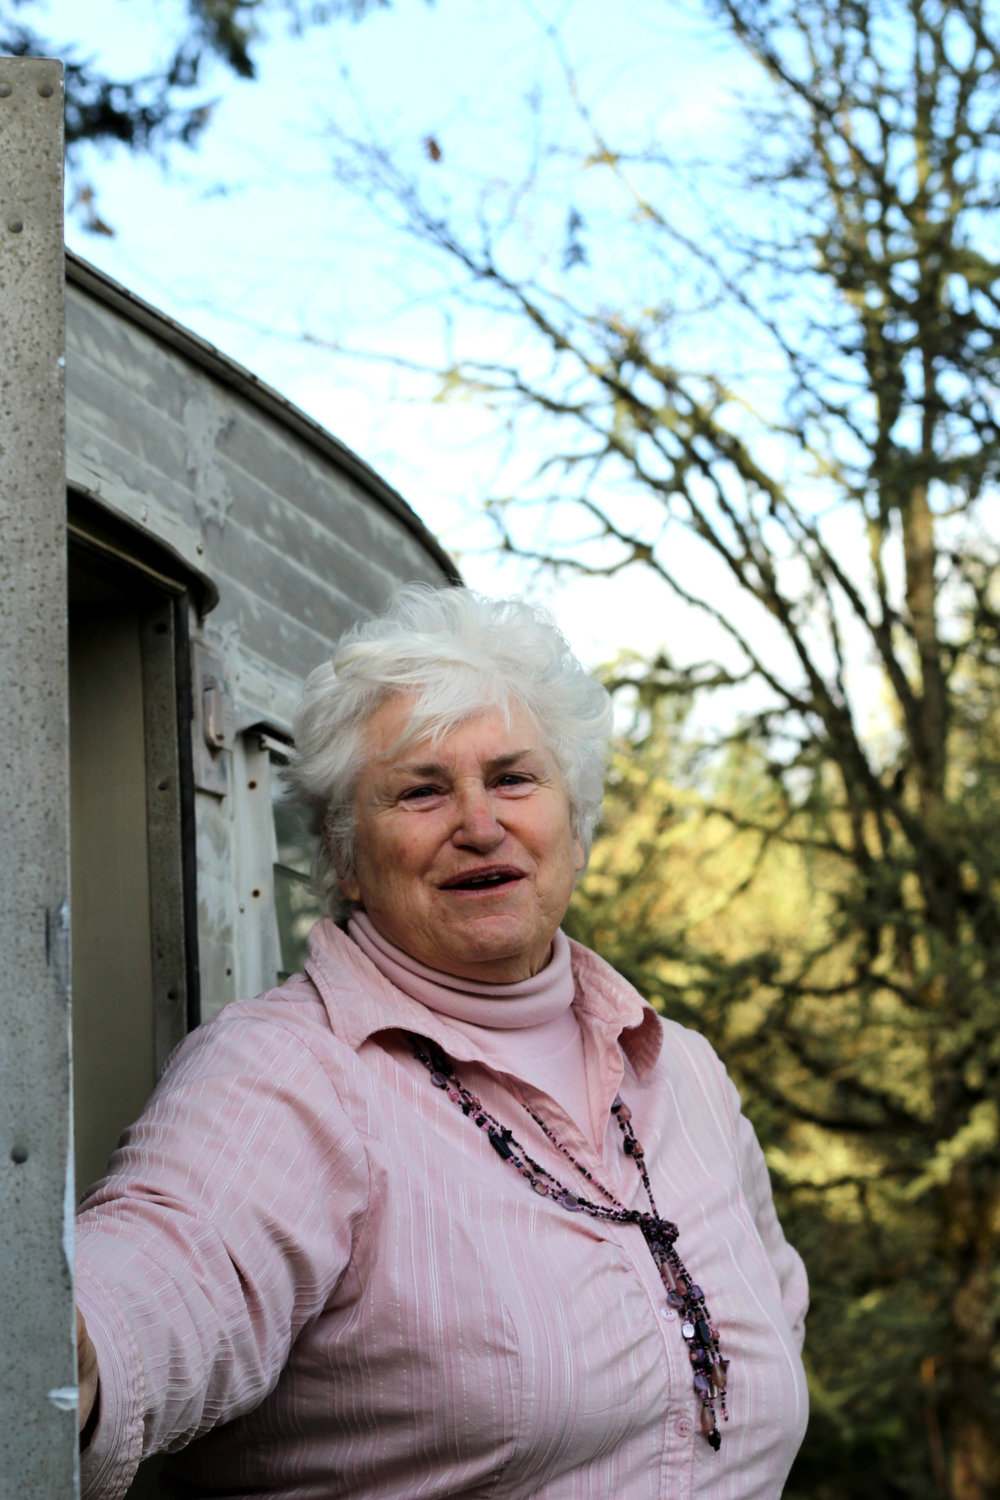 Carrol Crawford stands outside her trailer that she lives in full time.